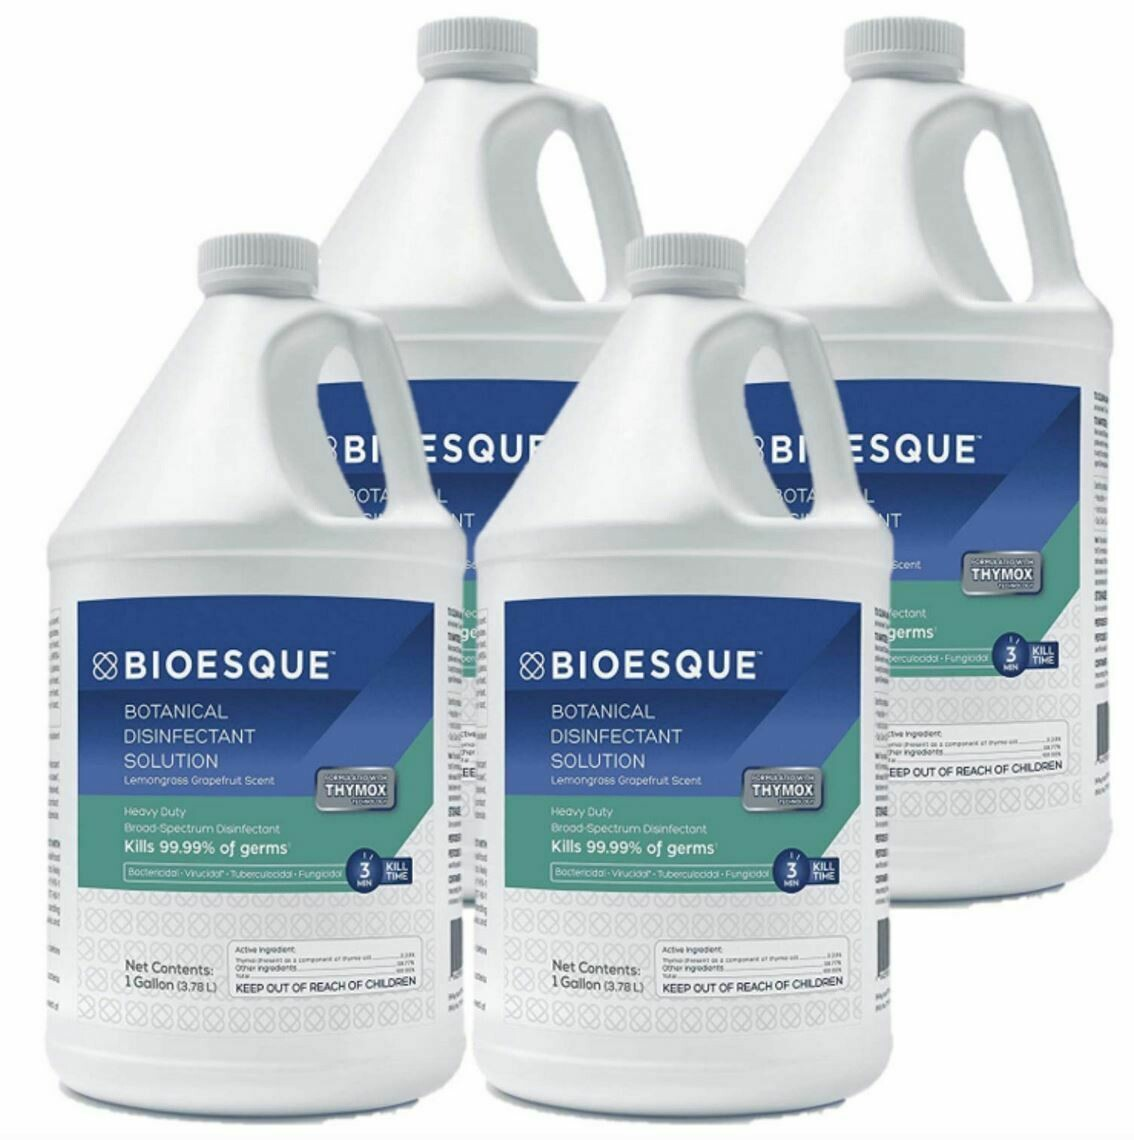 BIOESQUE Botanical Disinfectant Solution - Case of Gallon Containers (case of 4)